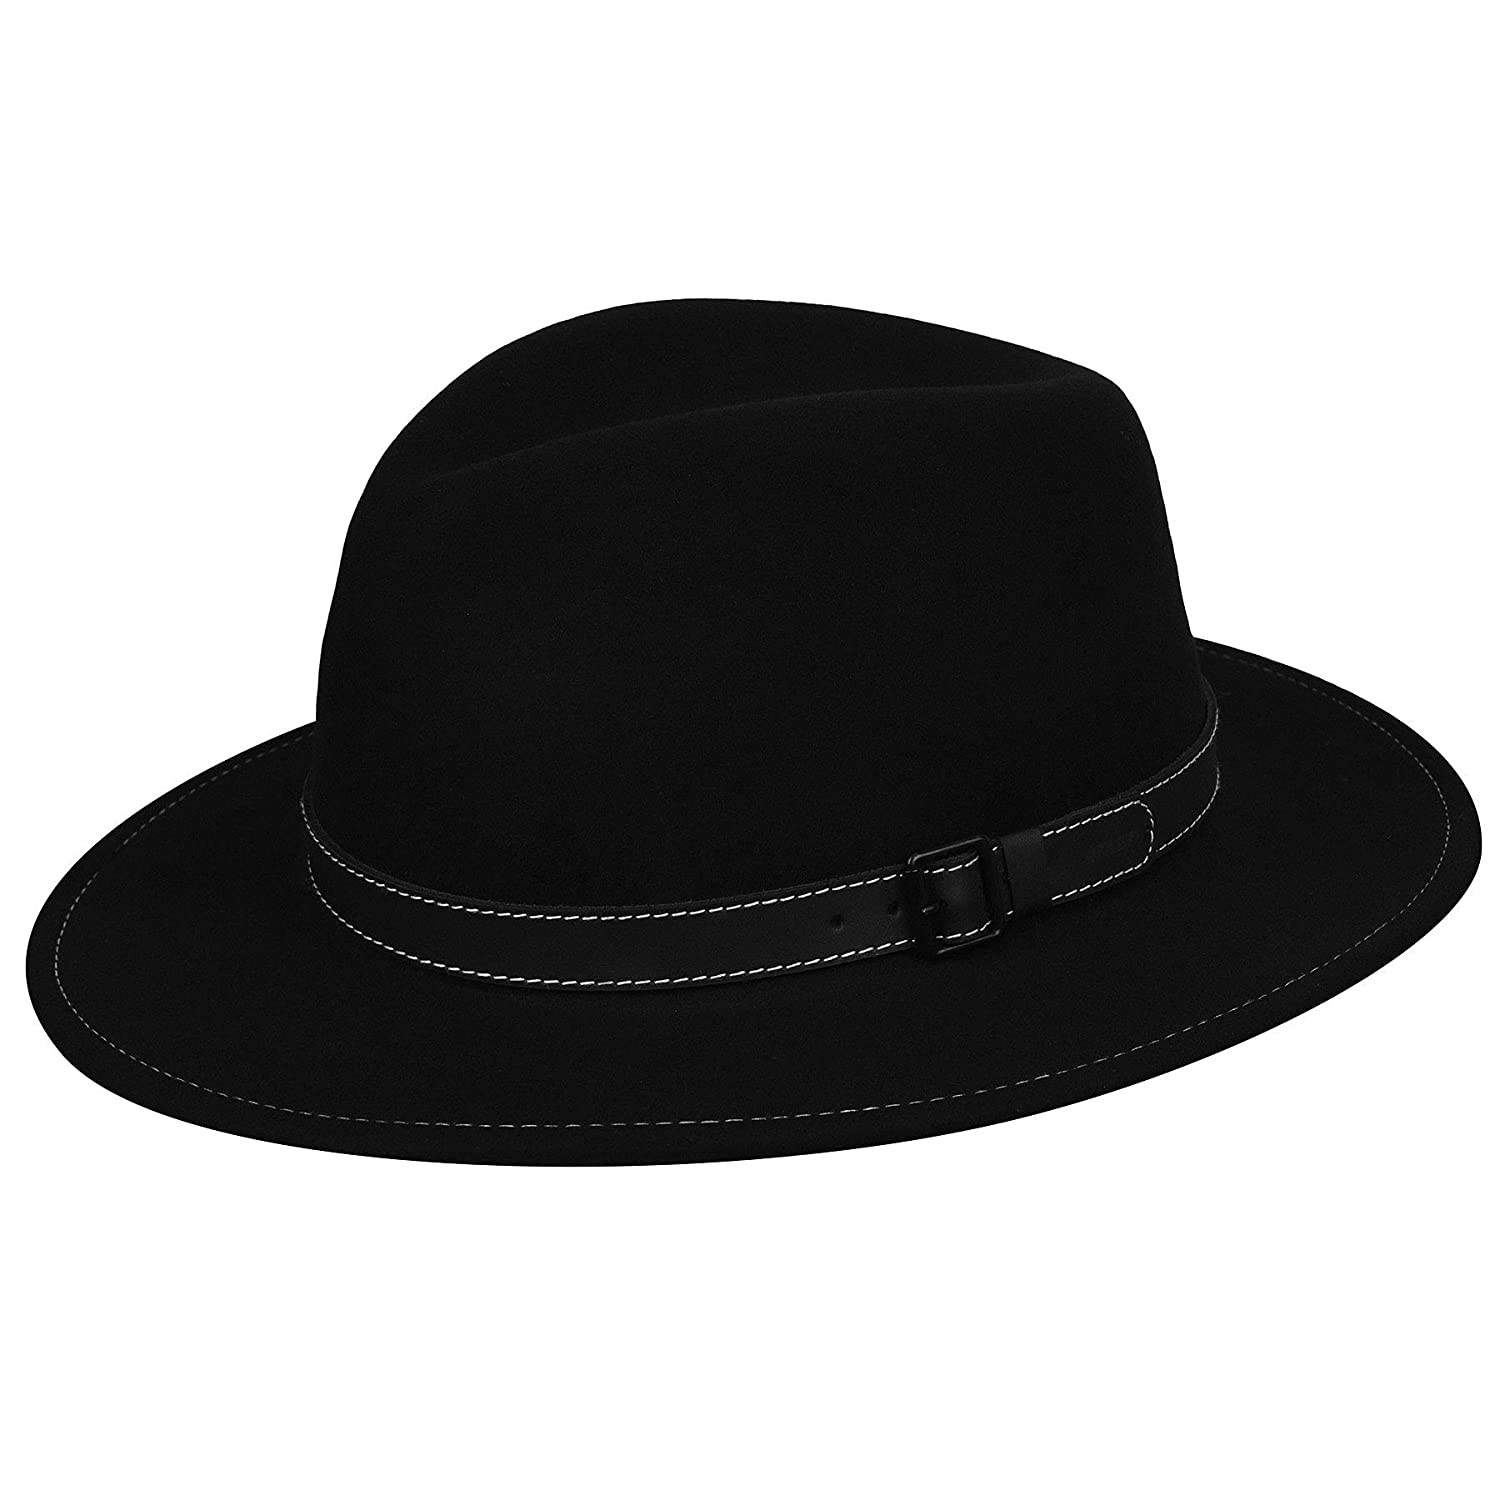 66bcbf6b9 Bailey of Hollywood Men's Wilmer Fedora Trilby Hat at Amazon Men's Clothing  store: